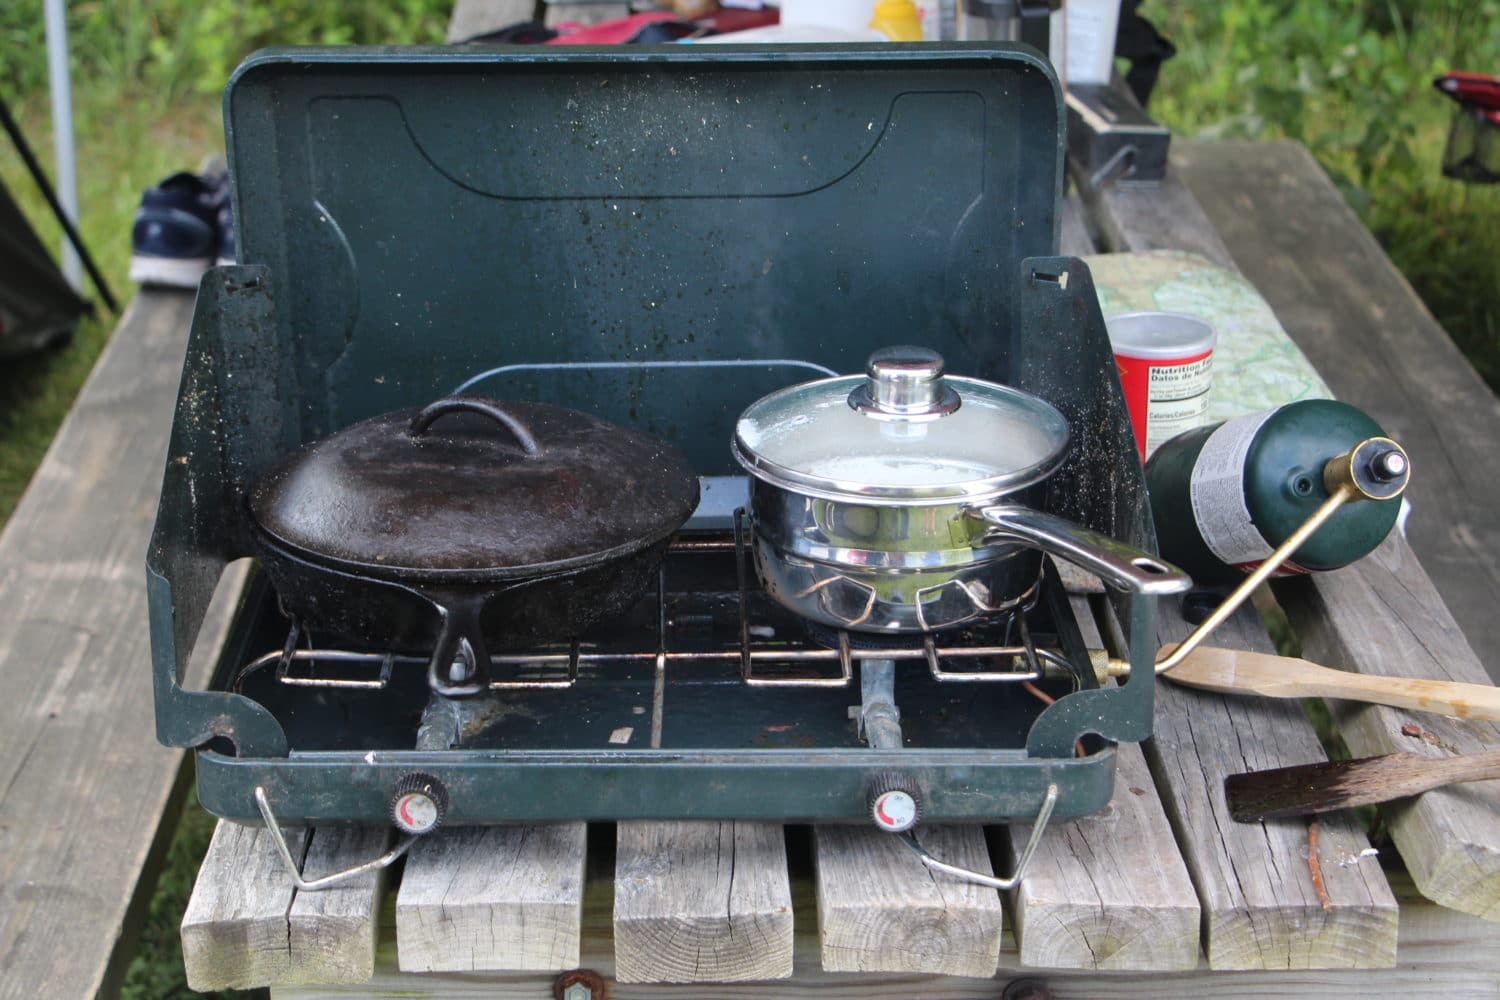 Exploring Portable Camping Stove and Oven Options | Backdoor